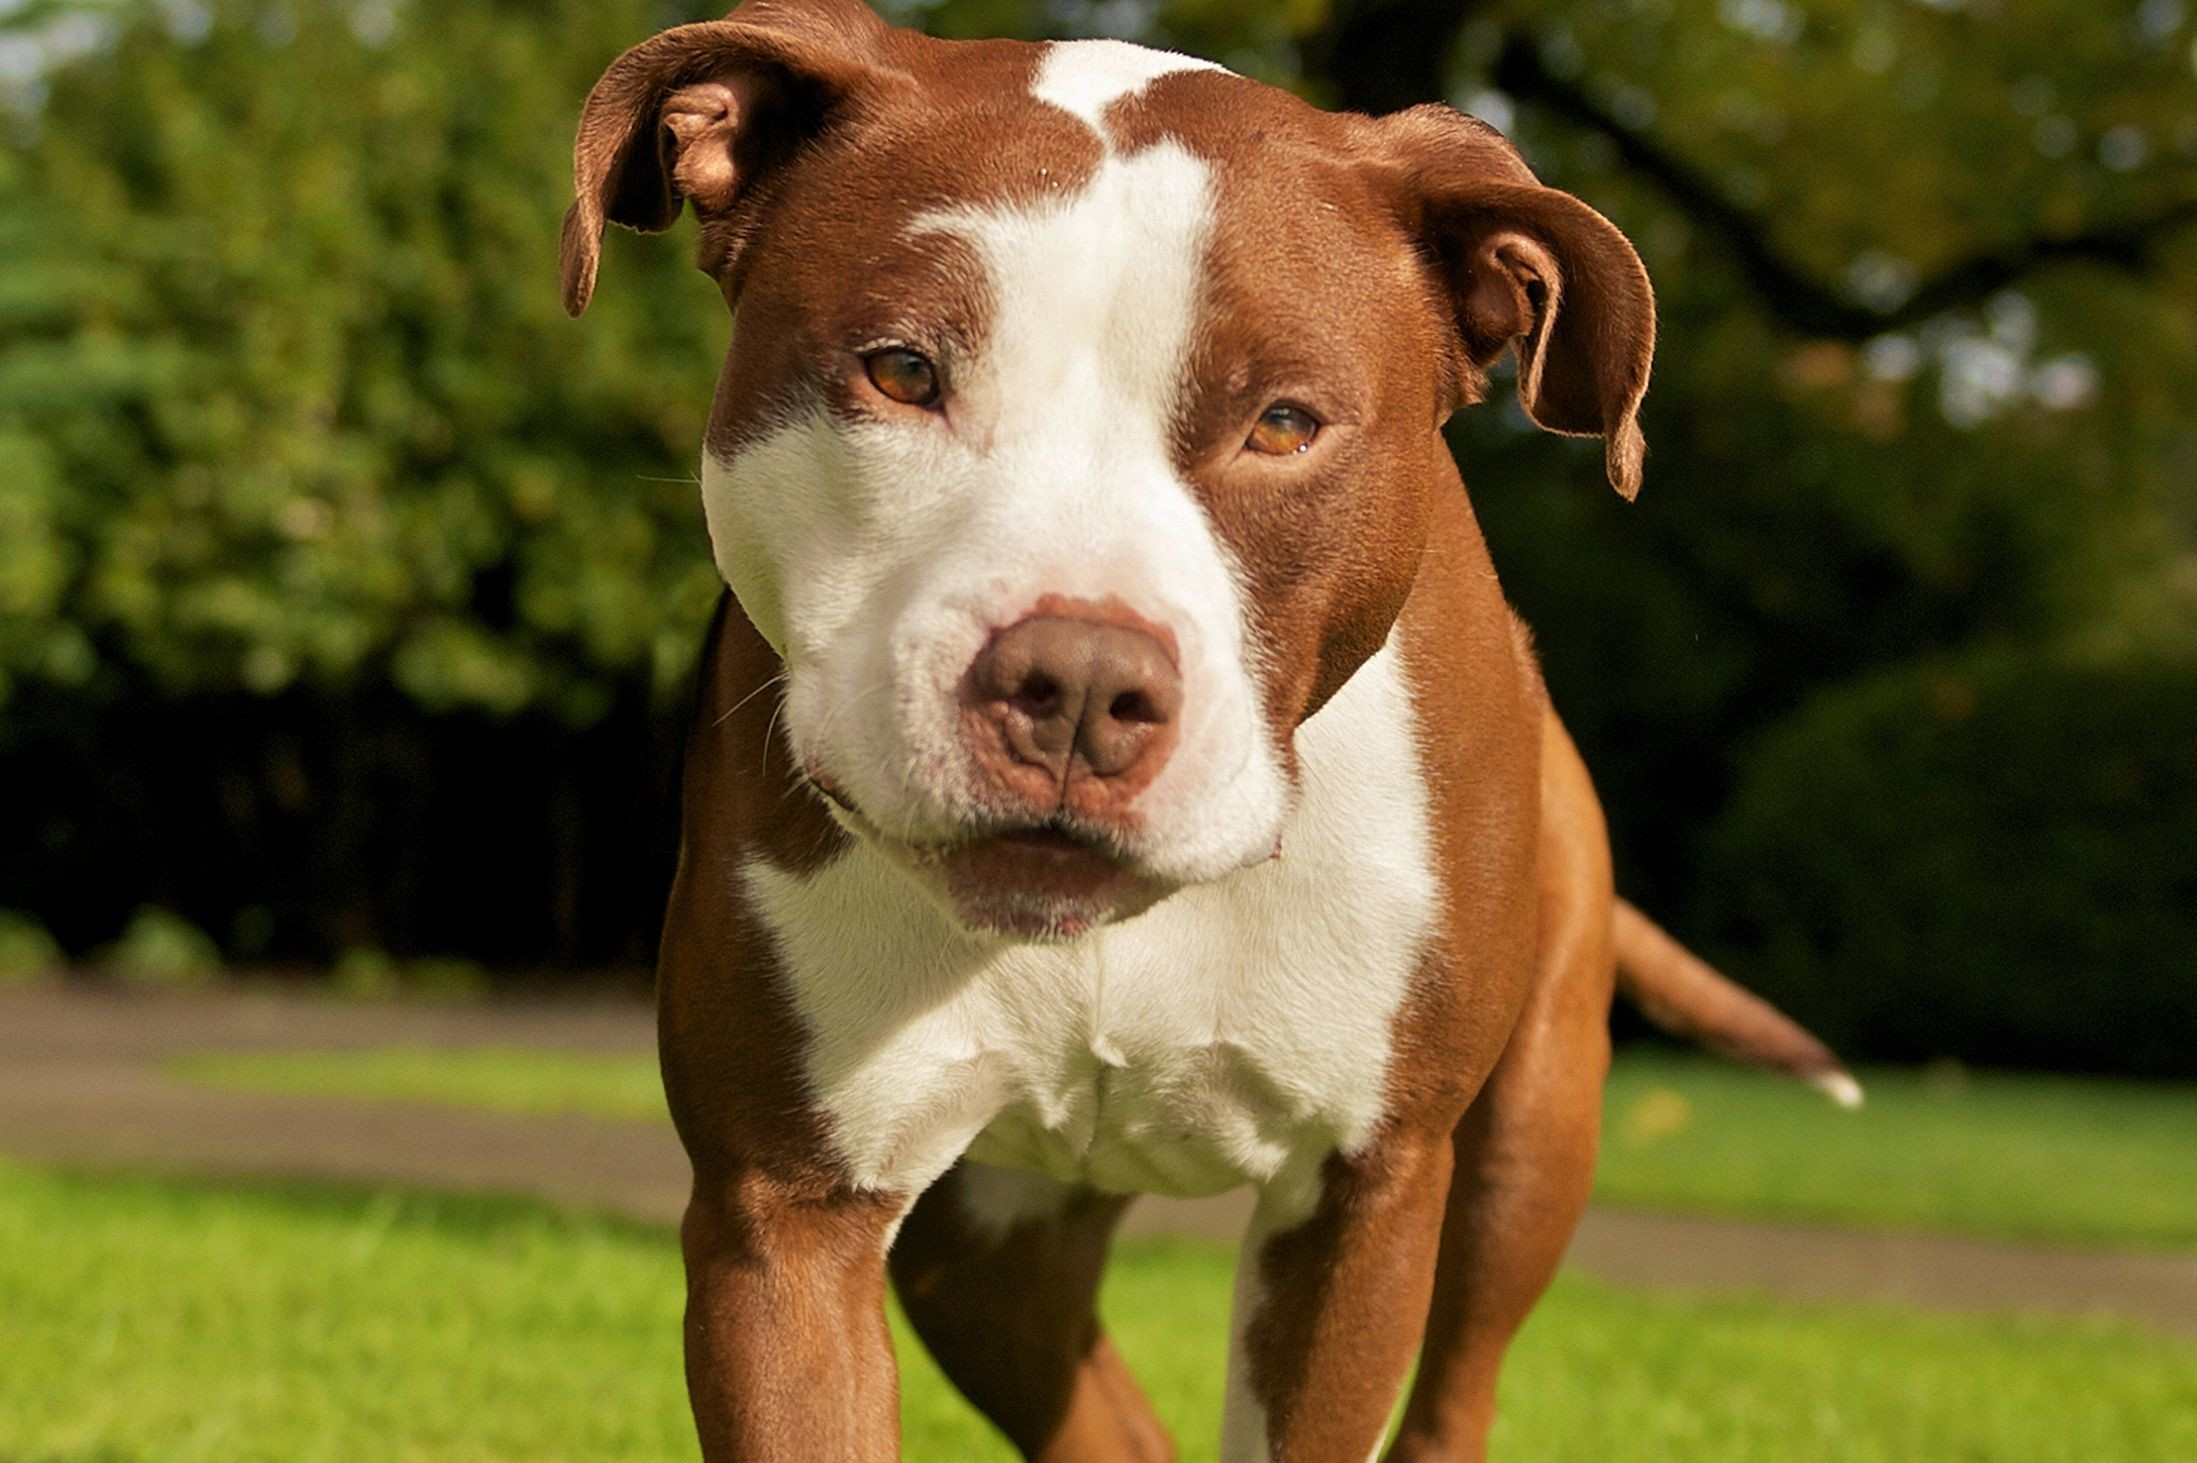 2197x1463 GL; Pitbull Dog 4091627 Wallpaper for Free | Special HQFX Wallpapers ...